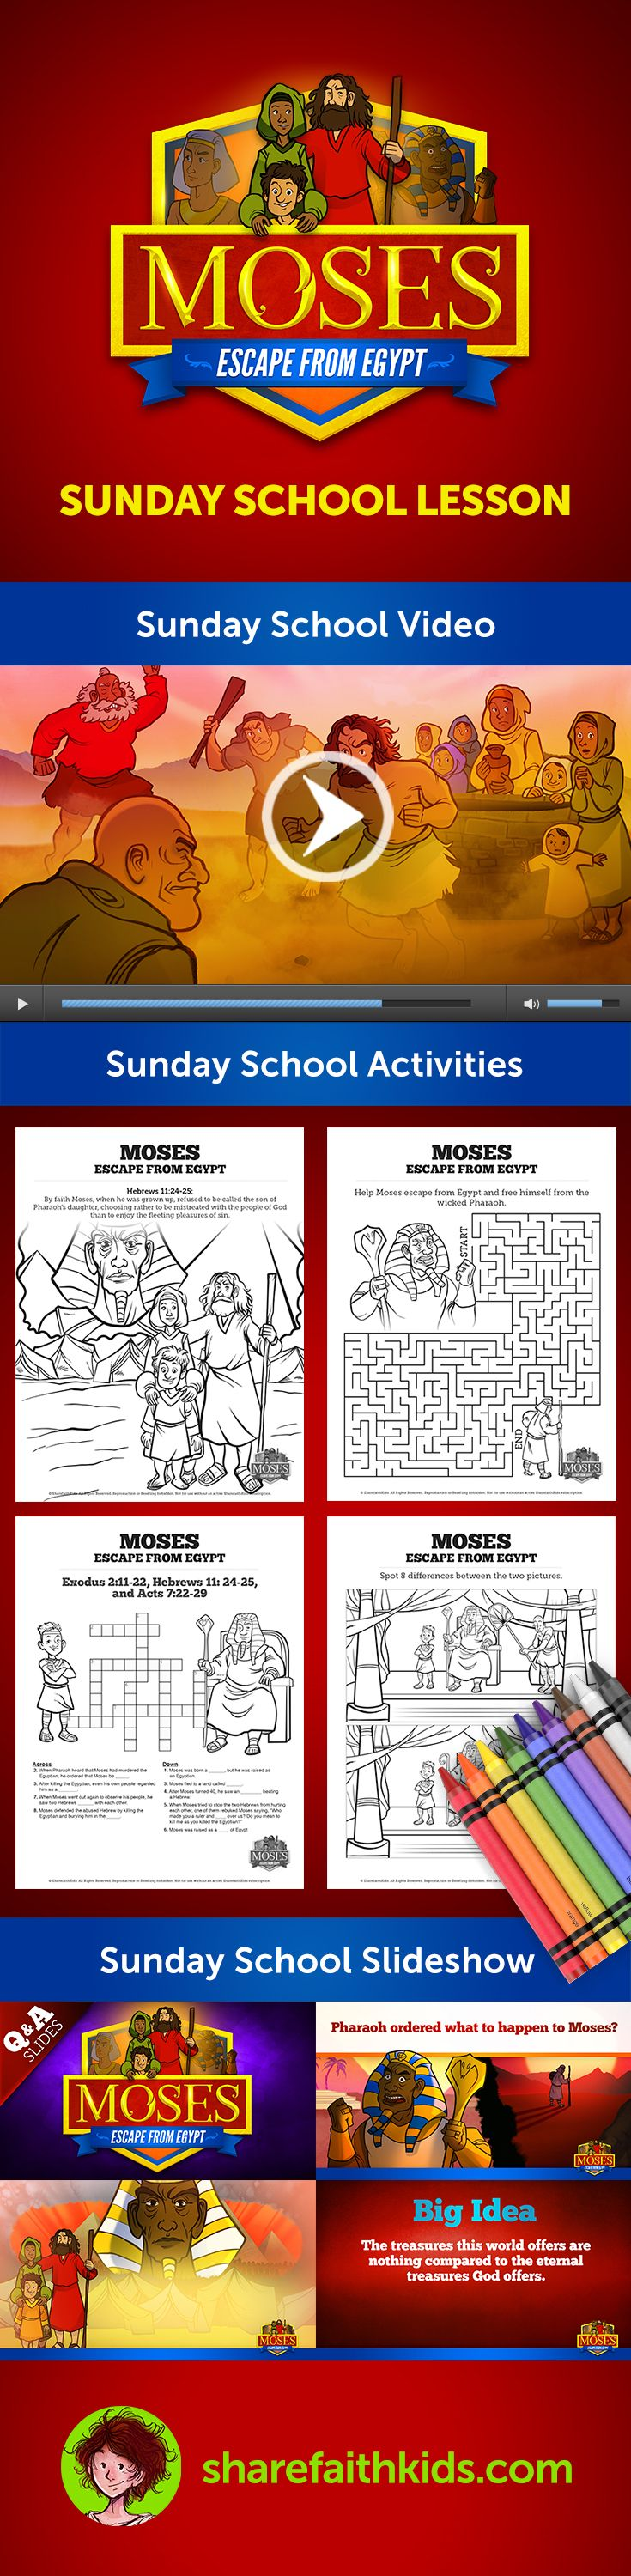 Exodus 2 Moses Escapes From Egypt Kids Bible Lesson: Moses Escapes From Egypt (Exodus 2:11-25) This Sunday School lesson provides a wealth of teacher resources that will make your lesson a surefire hit!